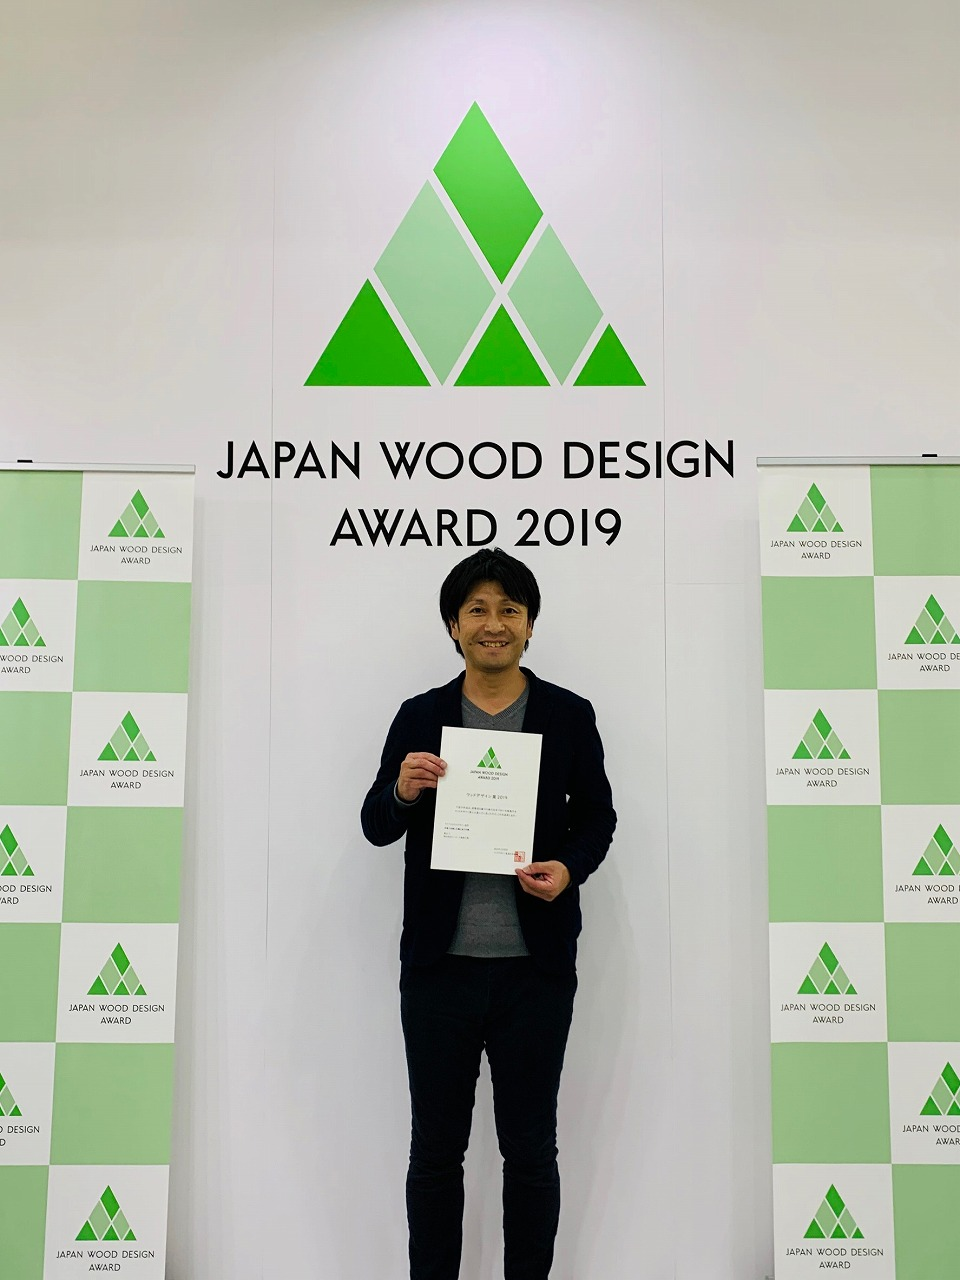 wooddesignaward2019-kinoiechkenchiku1211.jpg